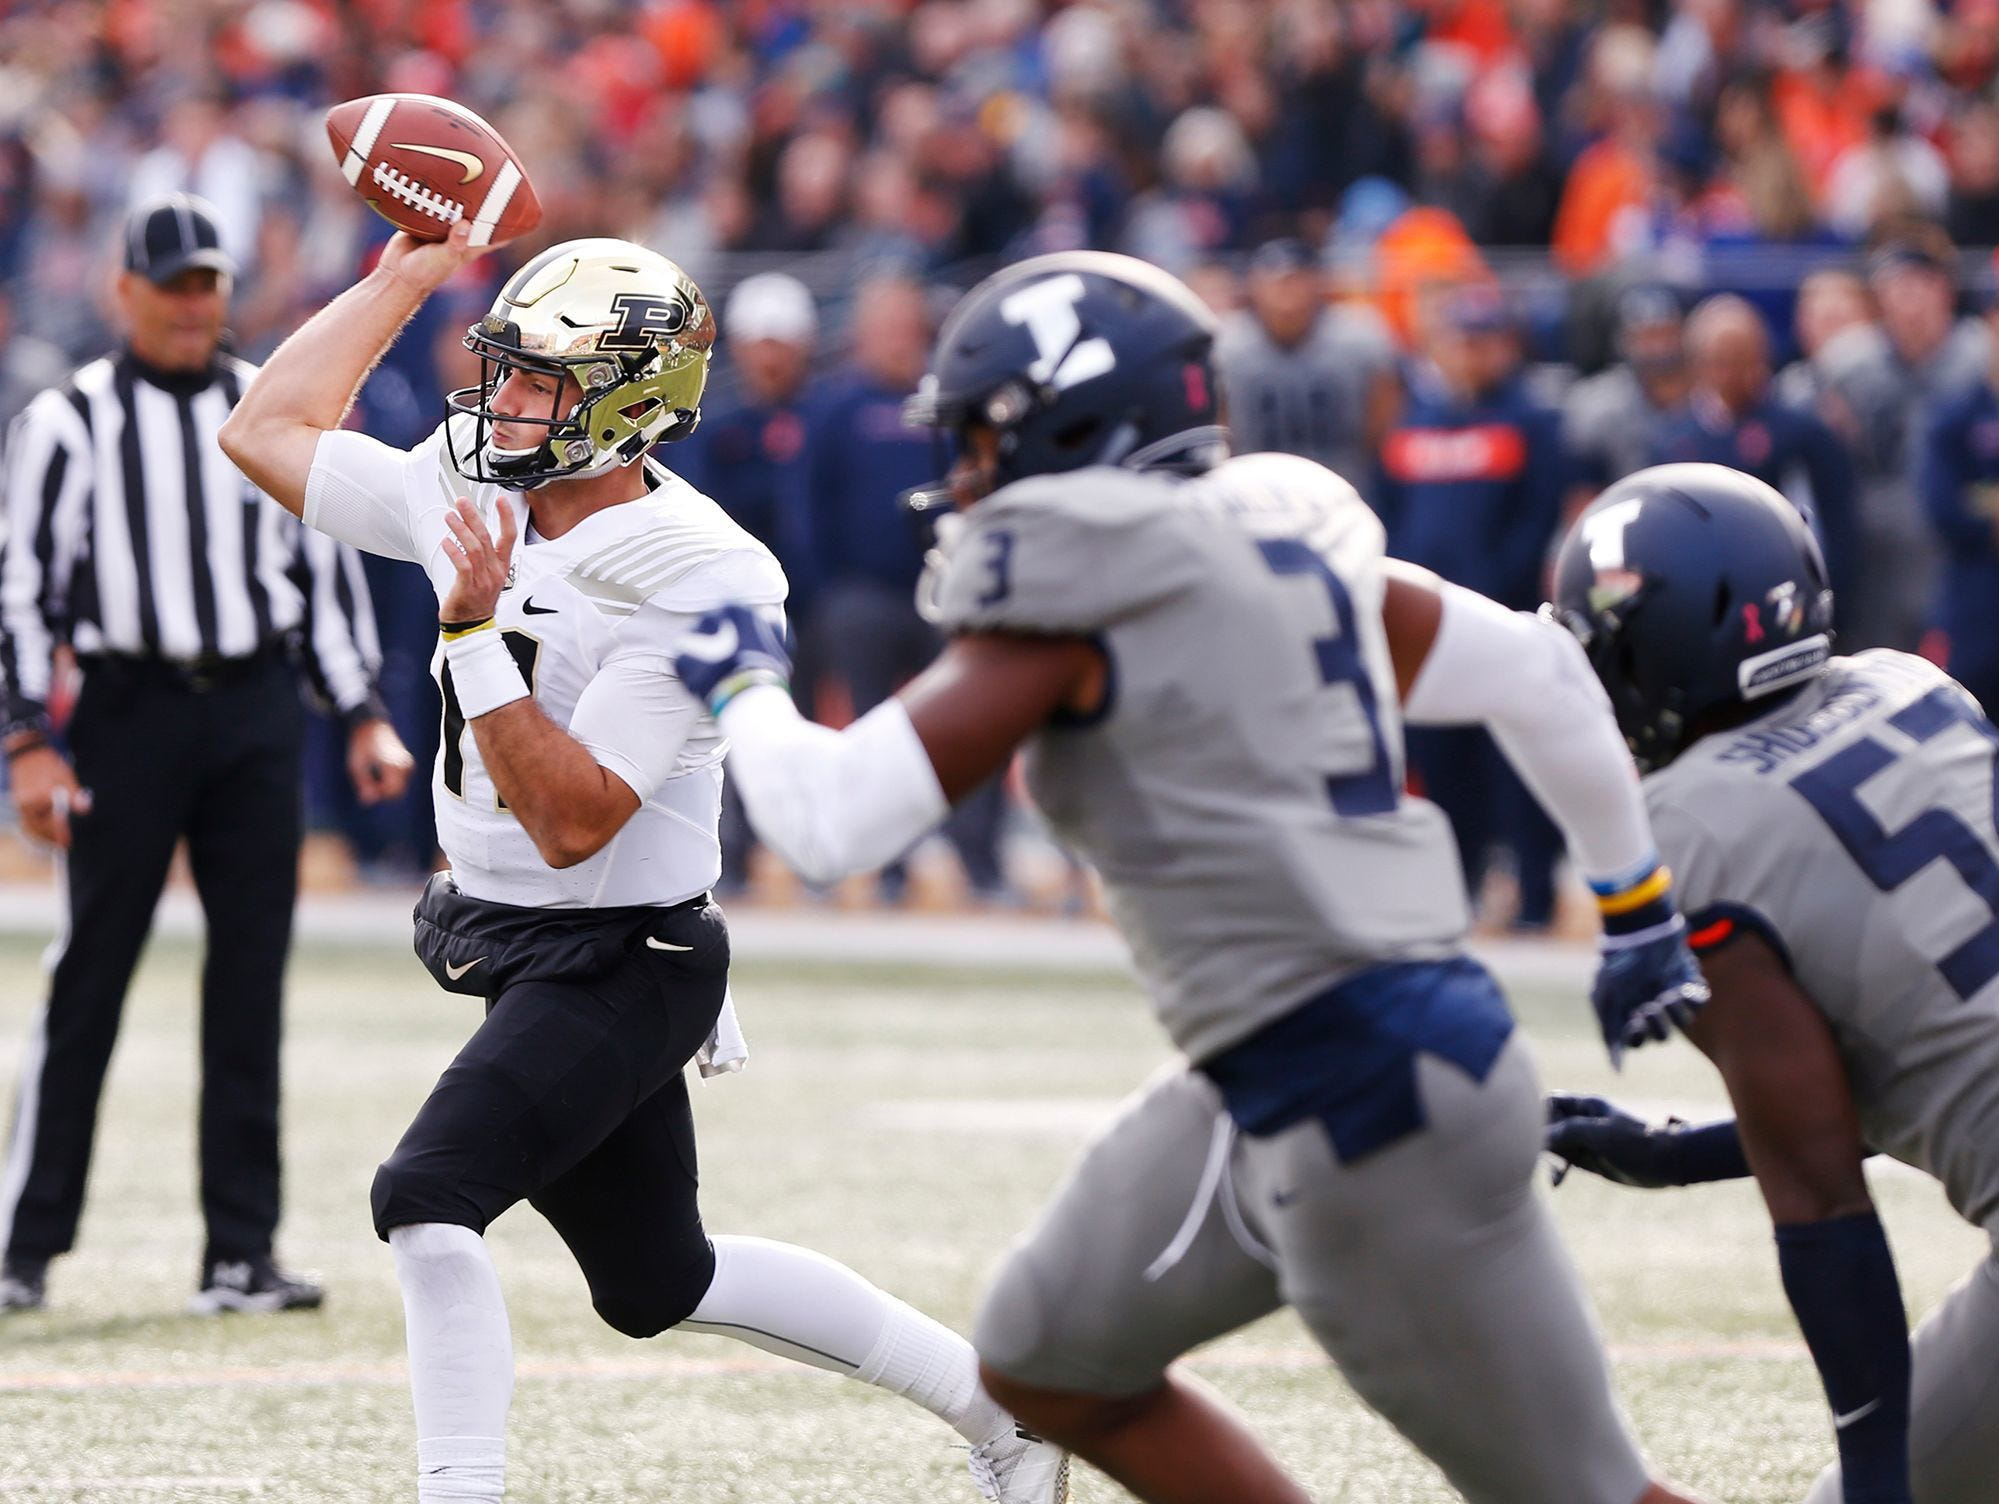 Purdue quarterback David Blough with a first-half pass against Illinois.